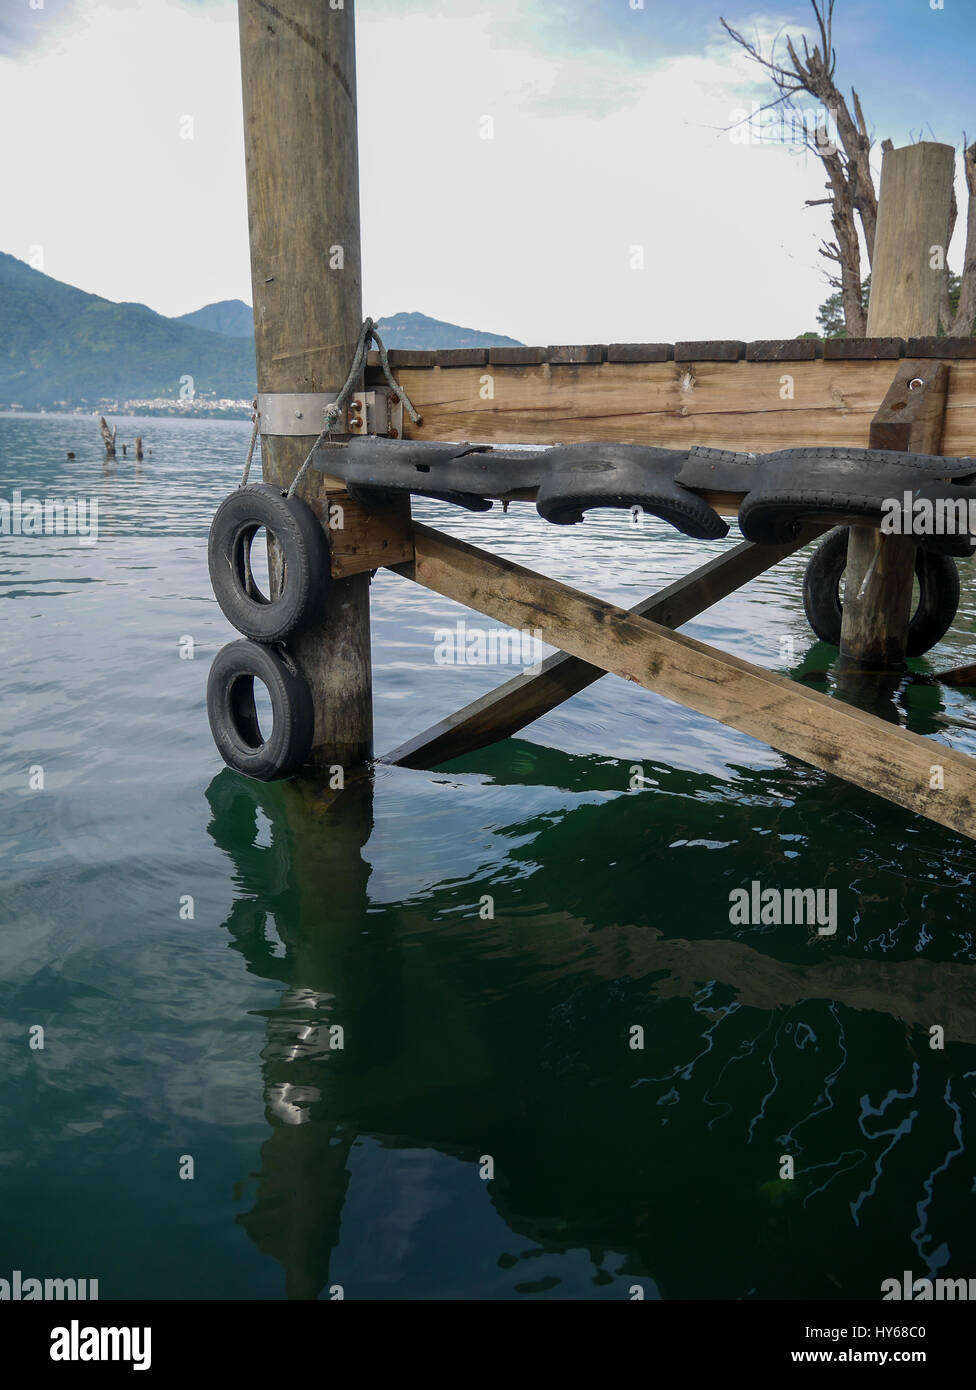 Wooden bridge port for boats and passengers to hop on and hop off the boats on Atitlan lake Guatemala - Stock Image